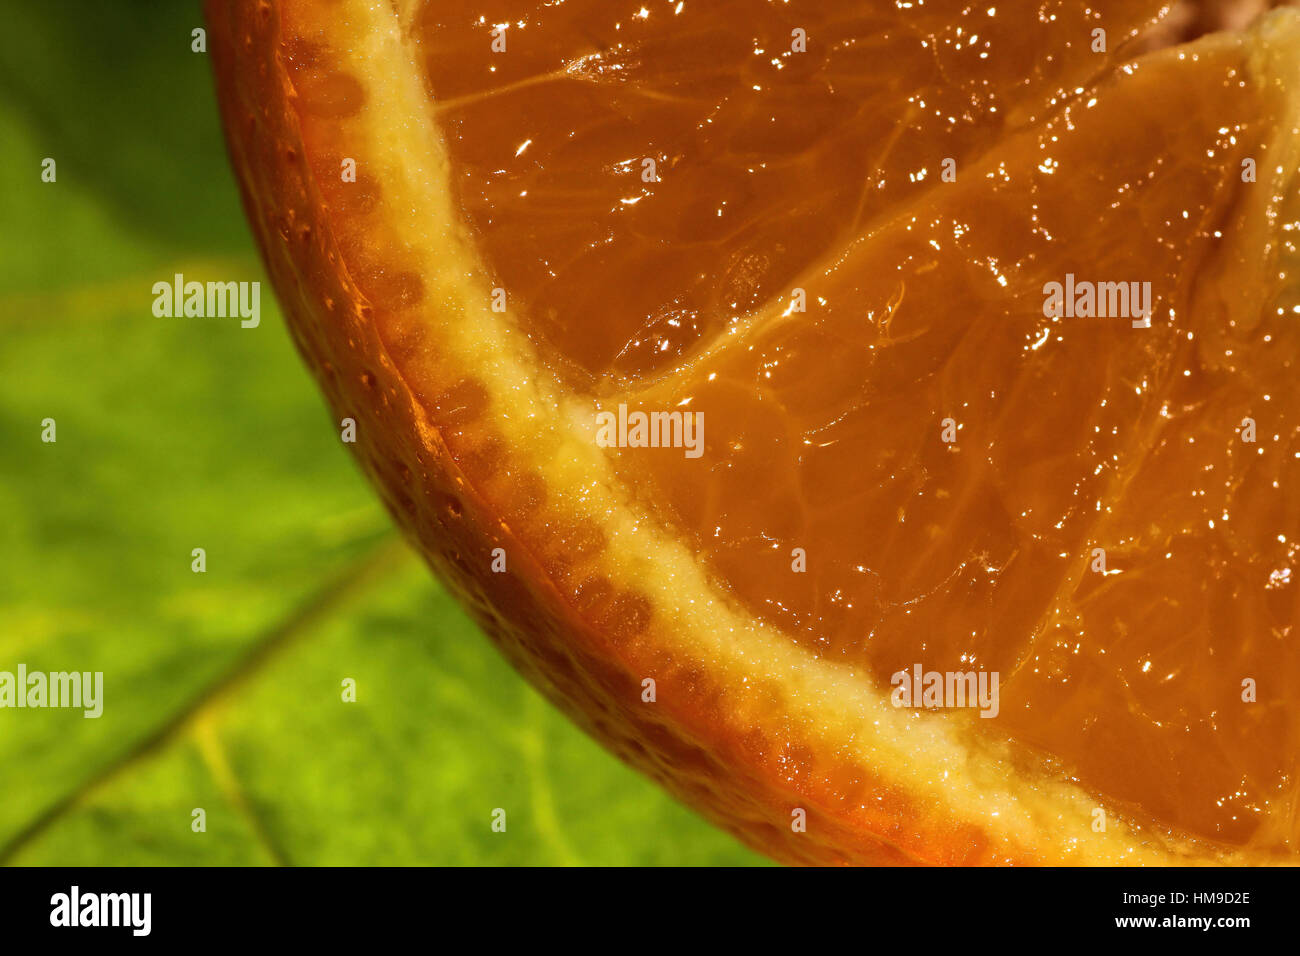 thirst quenching mouth watering orange up close - Stock Image